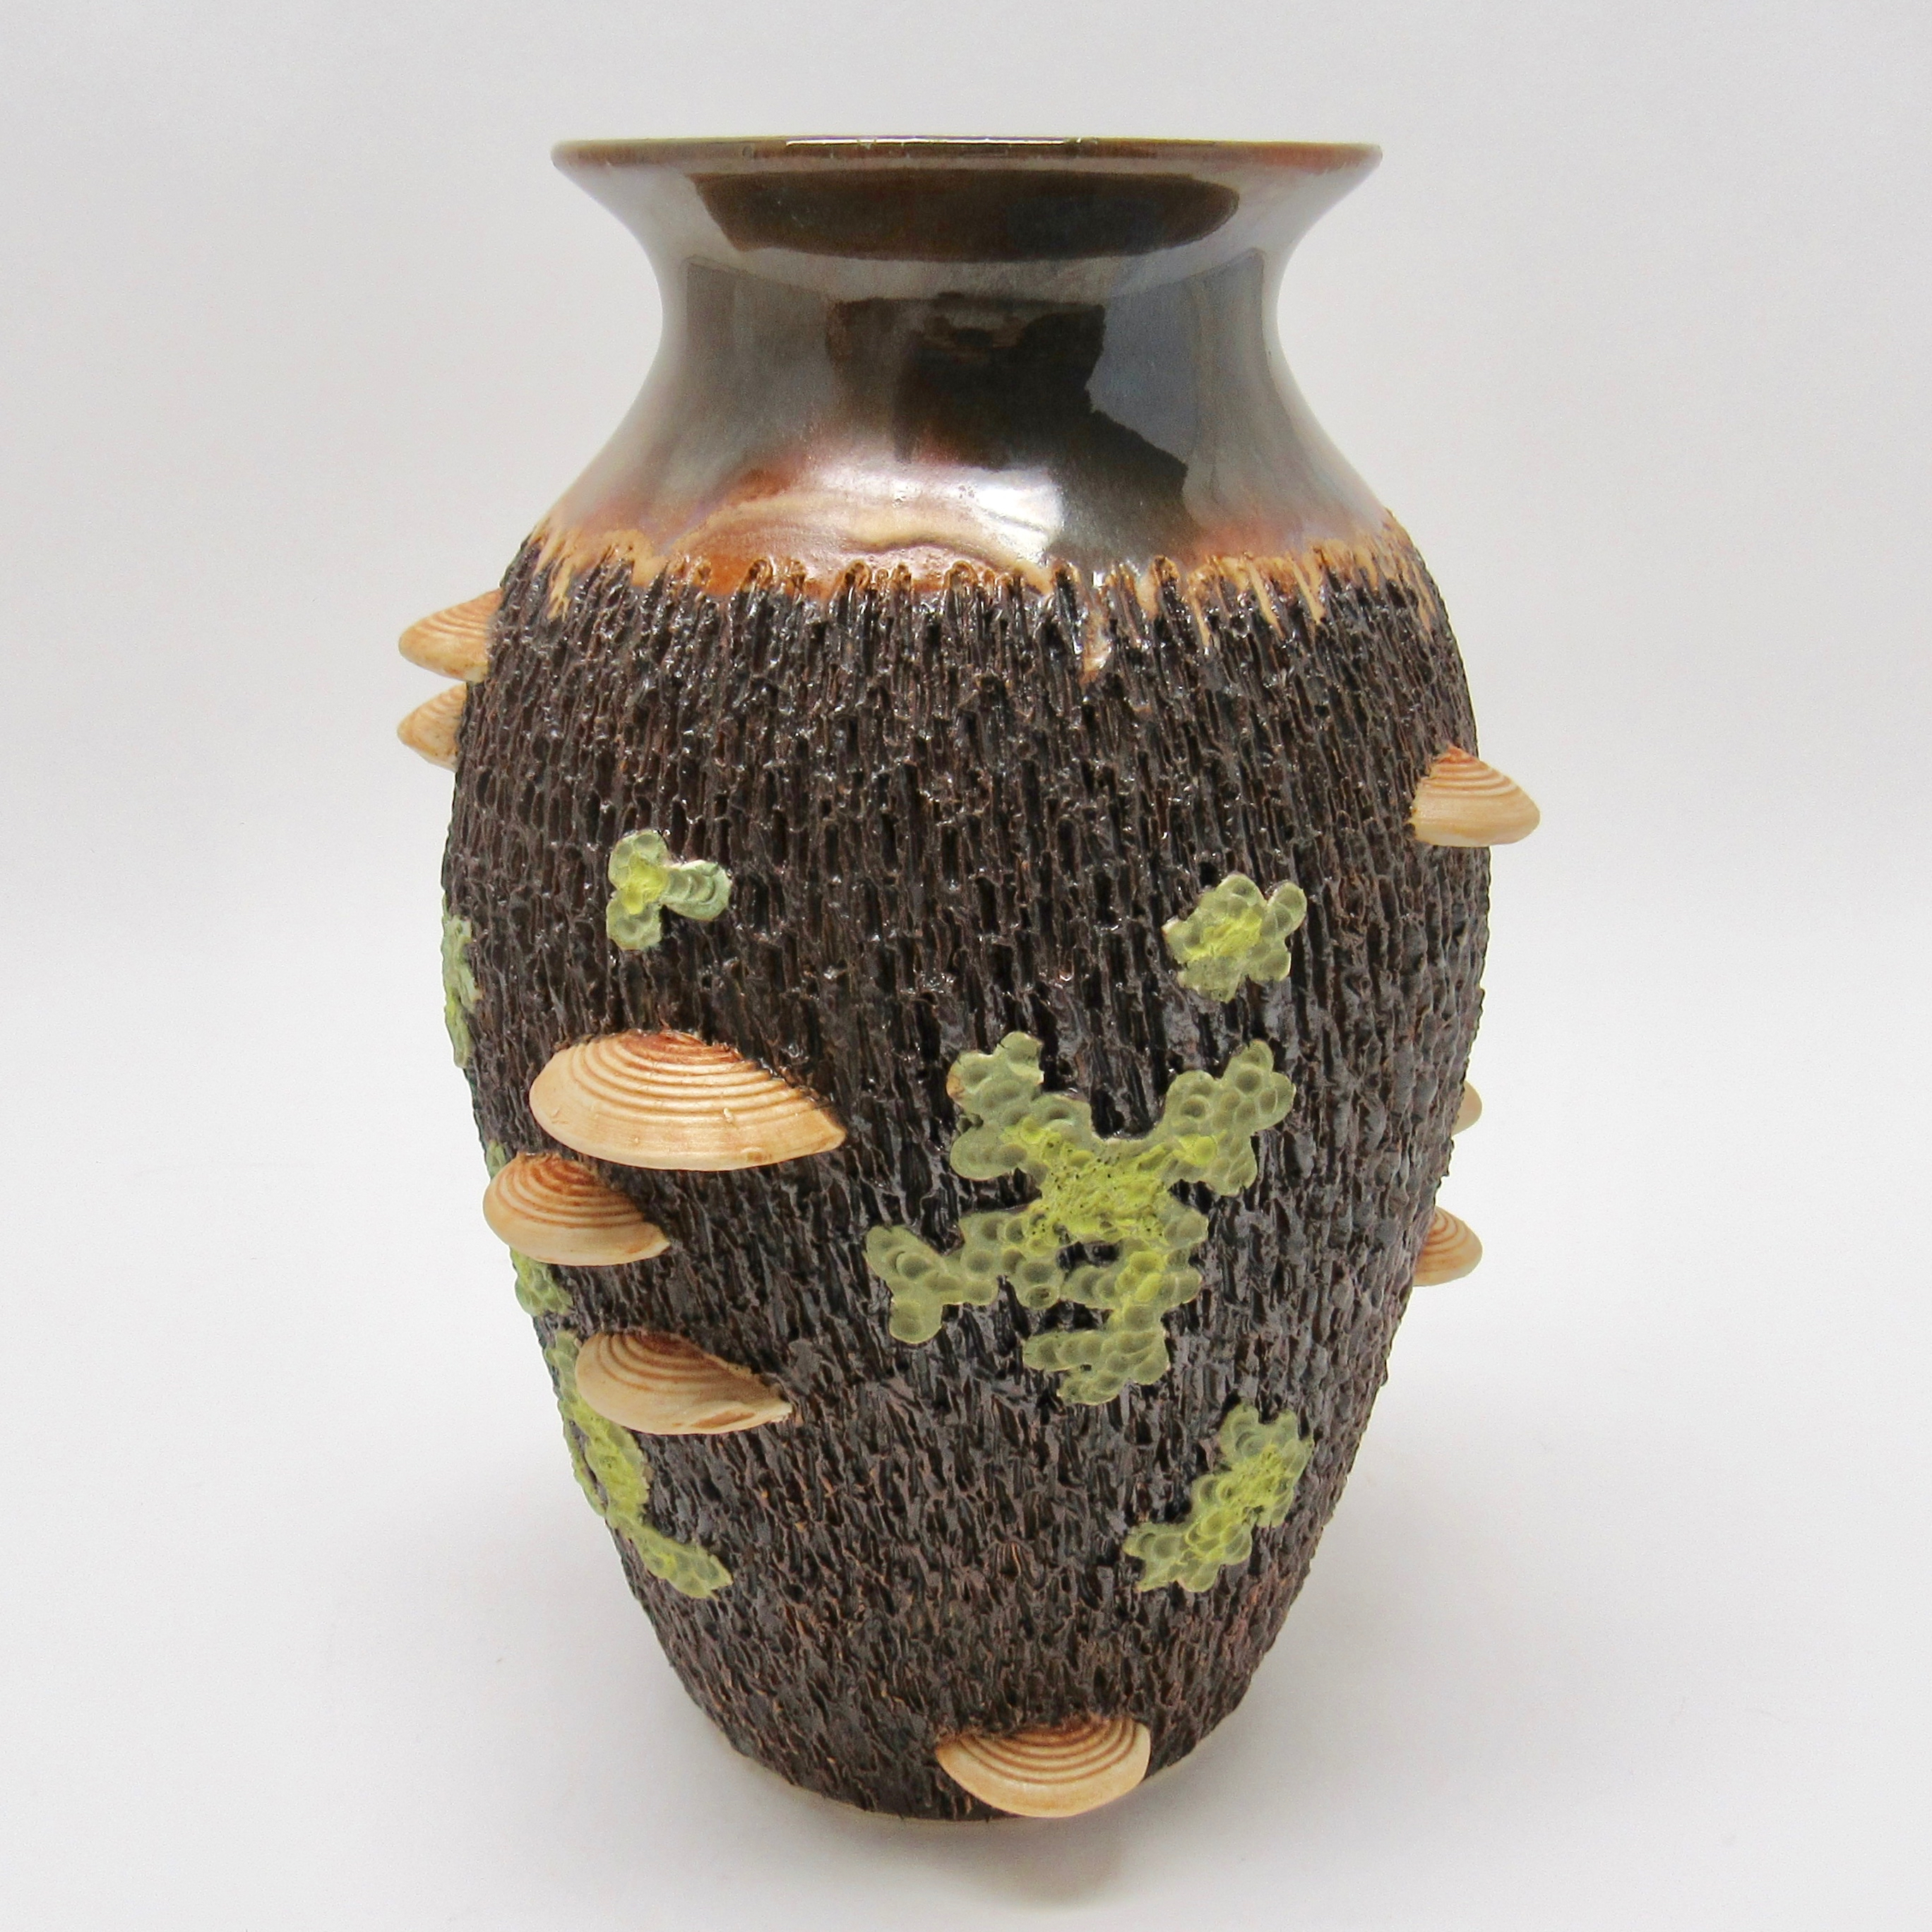 Potter Richard Roth has incredible work that is textural and looks like bark, mushrooms and lichen. Available at the Littleton League Gallery in the white mountains of NH or online. Home Decor , Wedding gifts